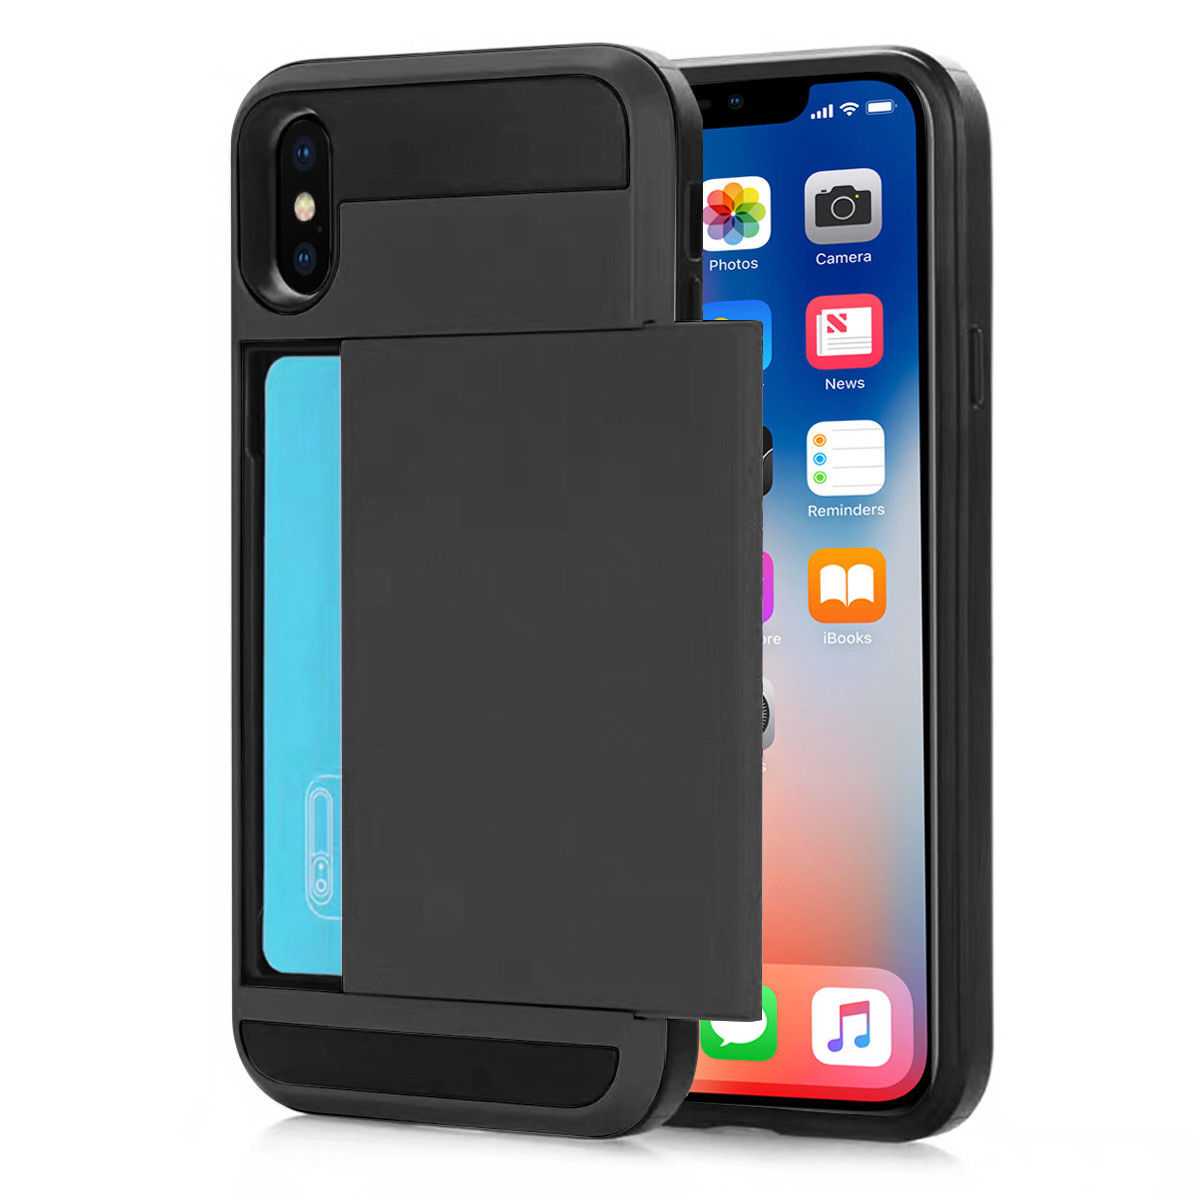 iPhone X Case, Mignova Rugged Protective Card Holder Shock-Absorption Drop-Protection Hard PC Shell Case for Apple iPhone X (Black)